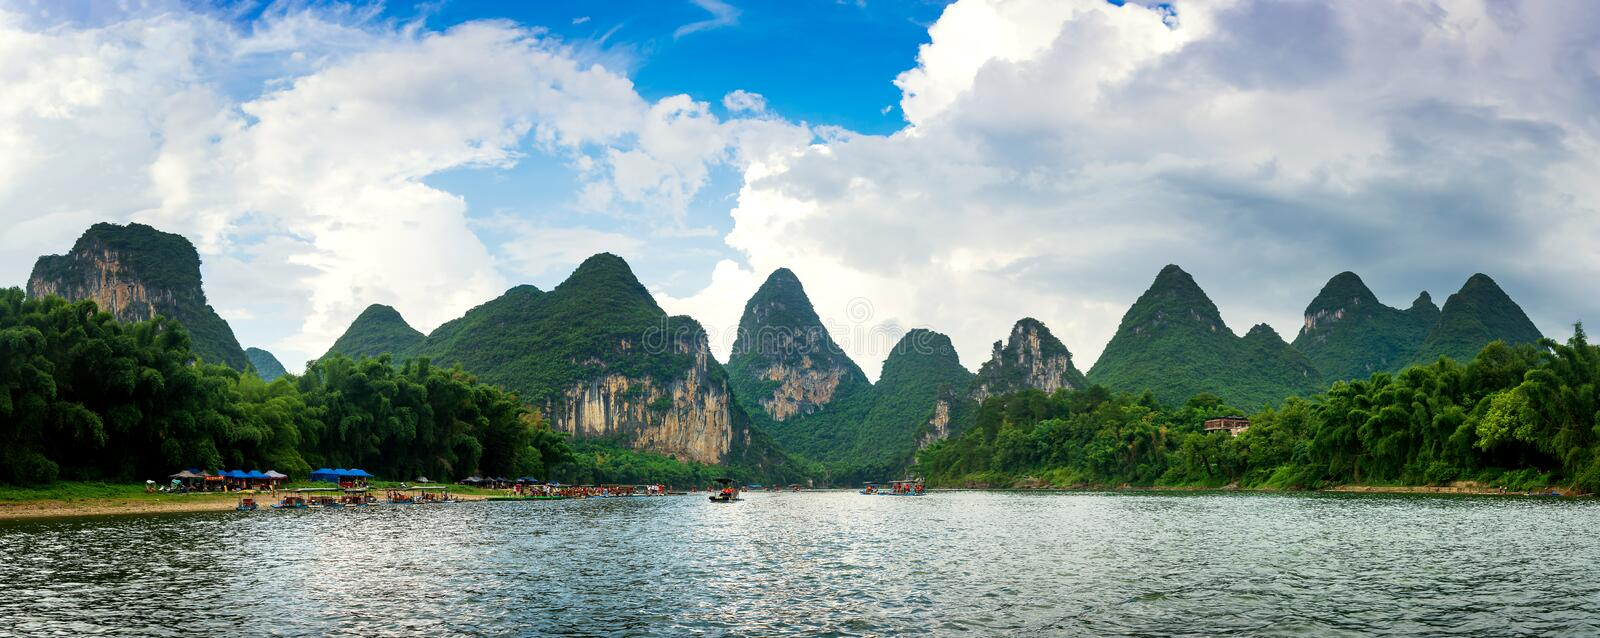 Panoramic view of Li river scenic cruise in China. Panoramic view of Li river scenic cruise in Yangshuo, China royalty free stock images